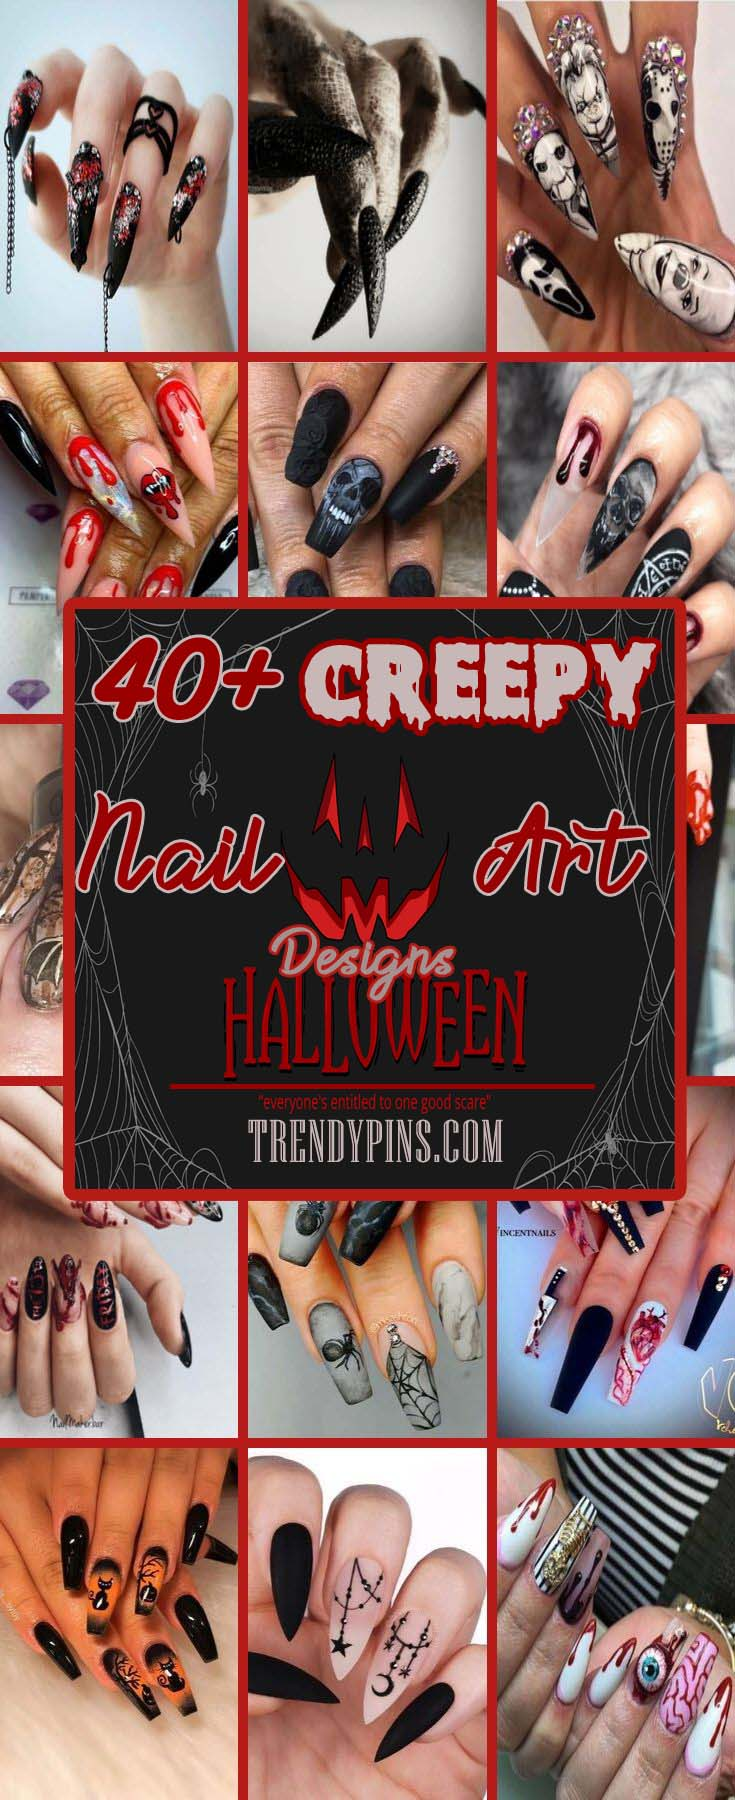 40+ Creepy Halloween Nail Art Designs #nails #Halloween nails #trendypins